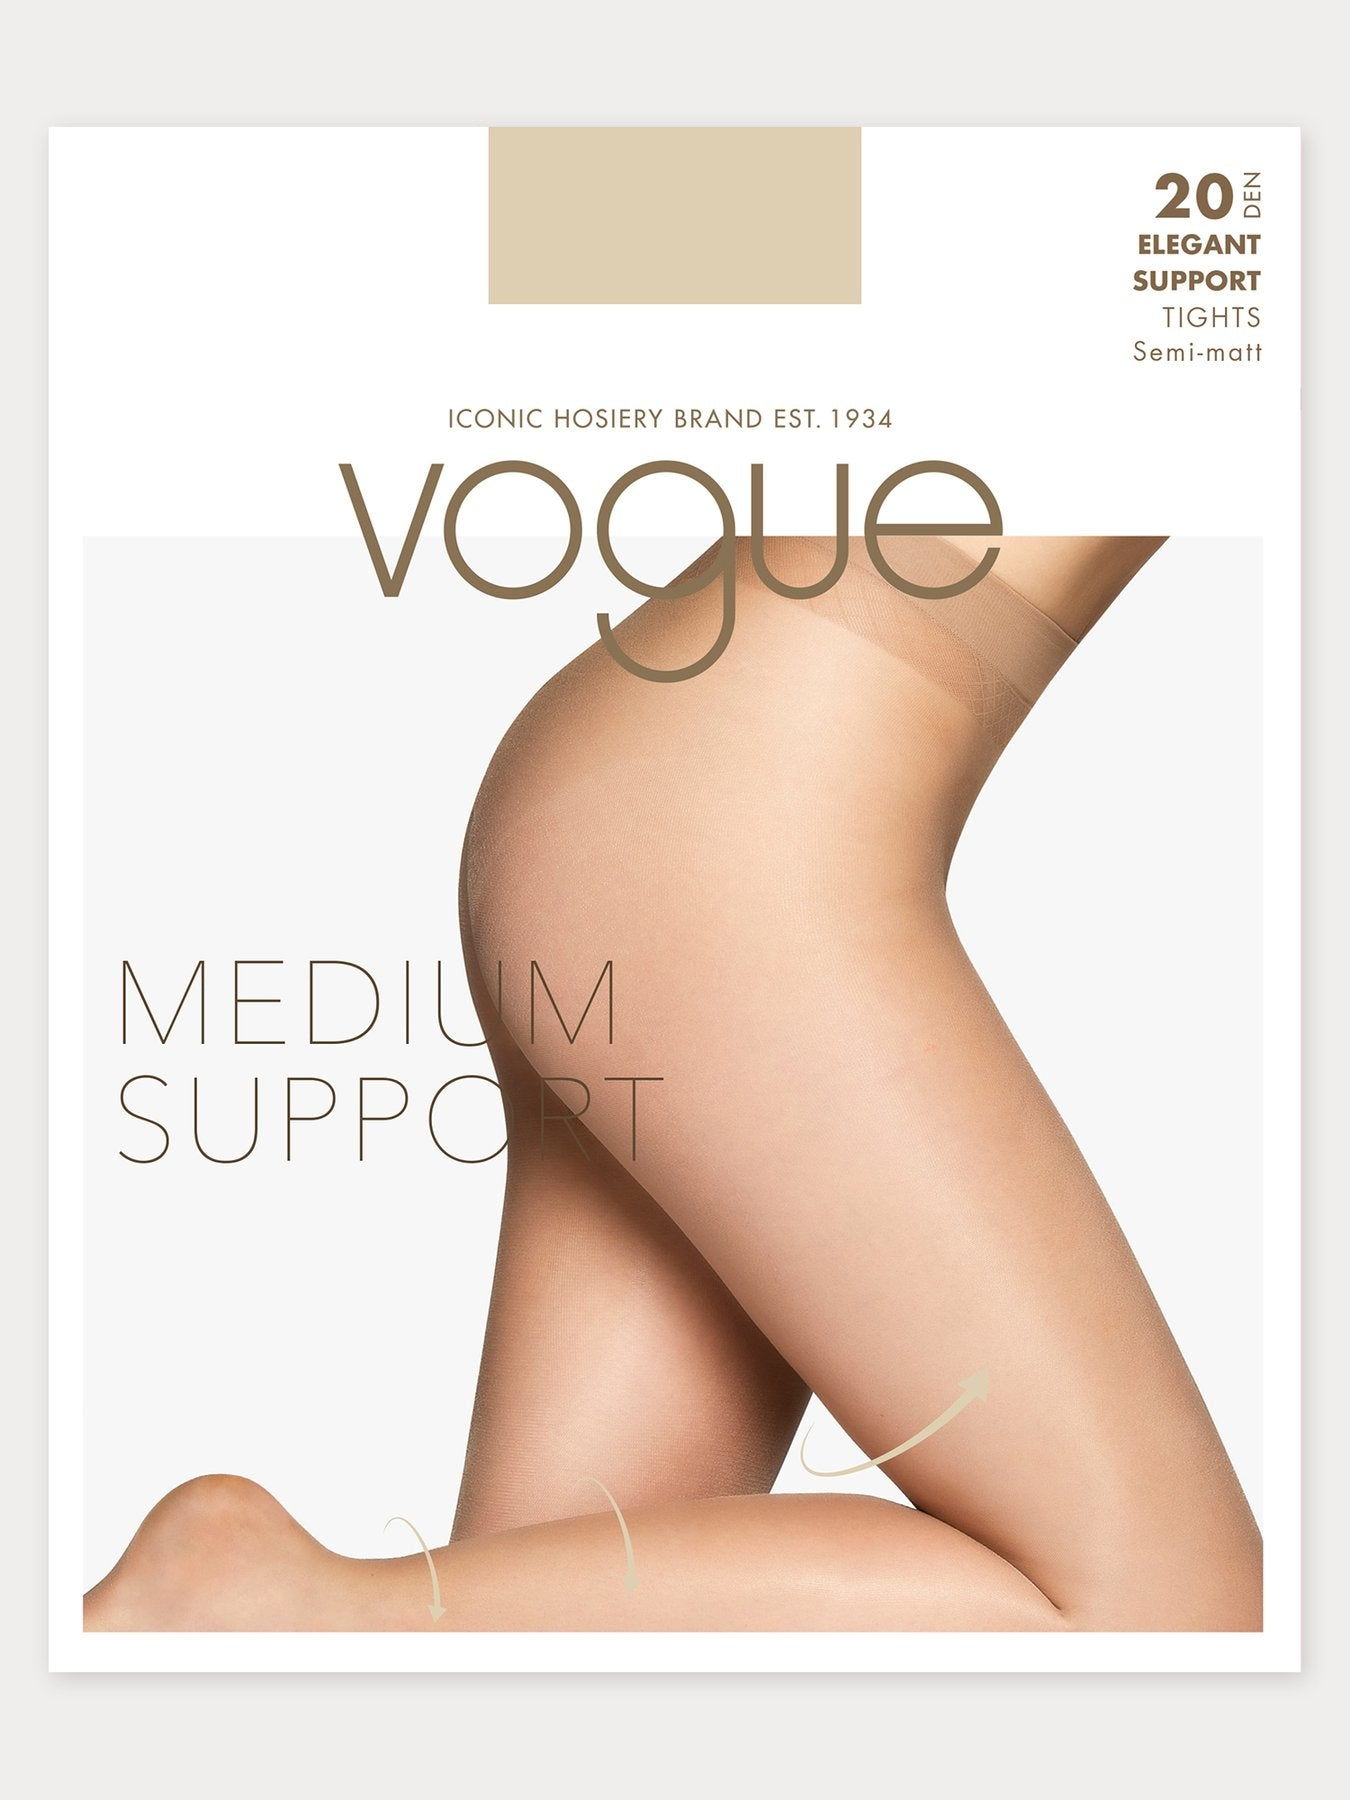 Vogue elegant medium support tights.